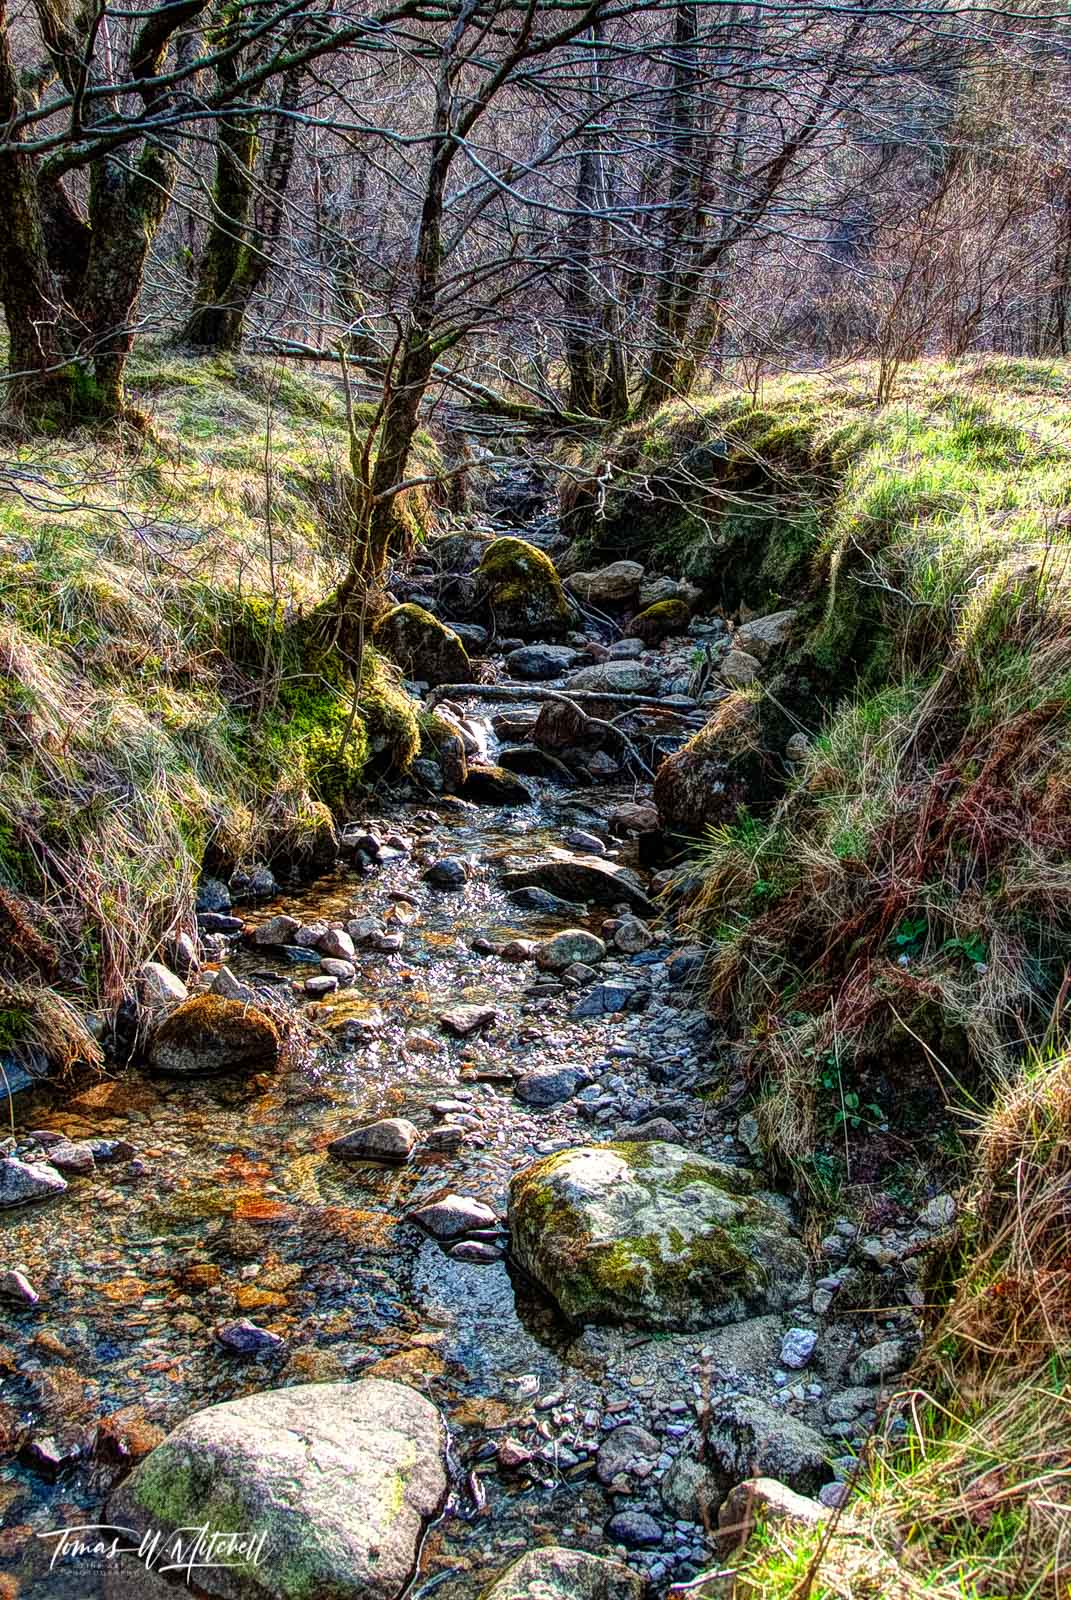 limited edition, museum grade, fine art, prints, glen coe, scotland, fairy, stream, sunlight, grass, branches, trees, water, nature, photo